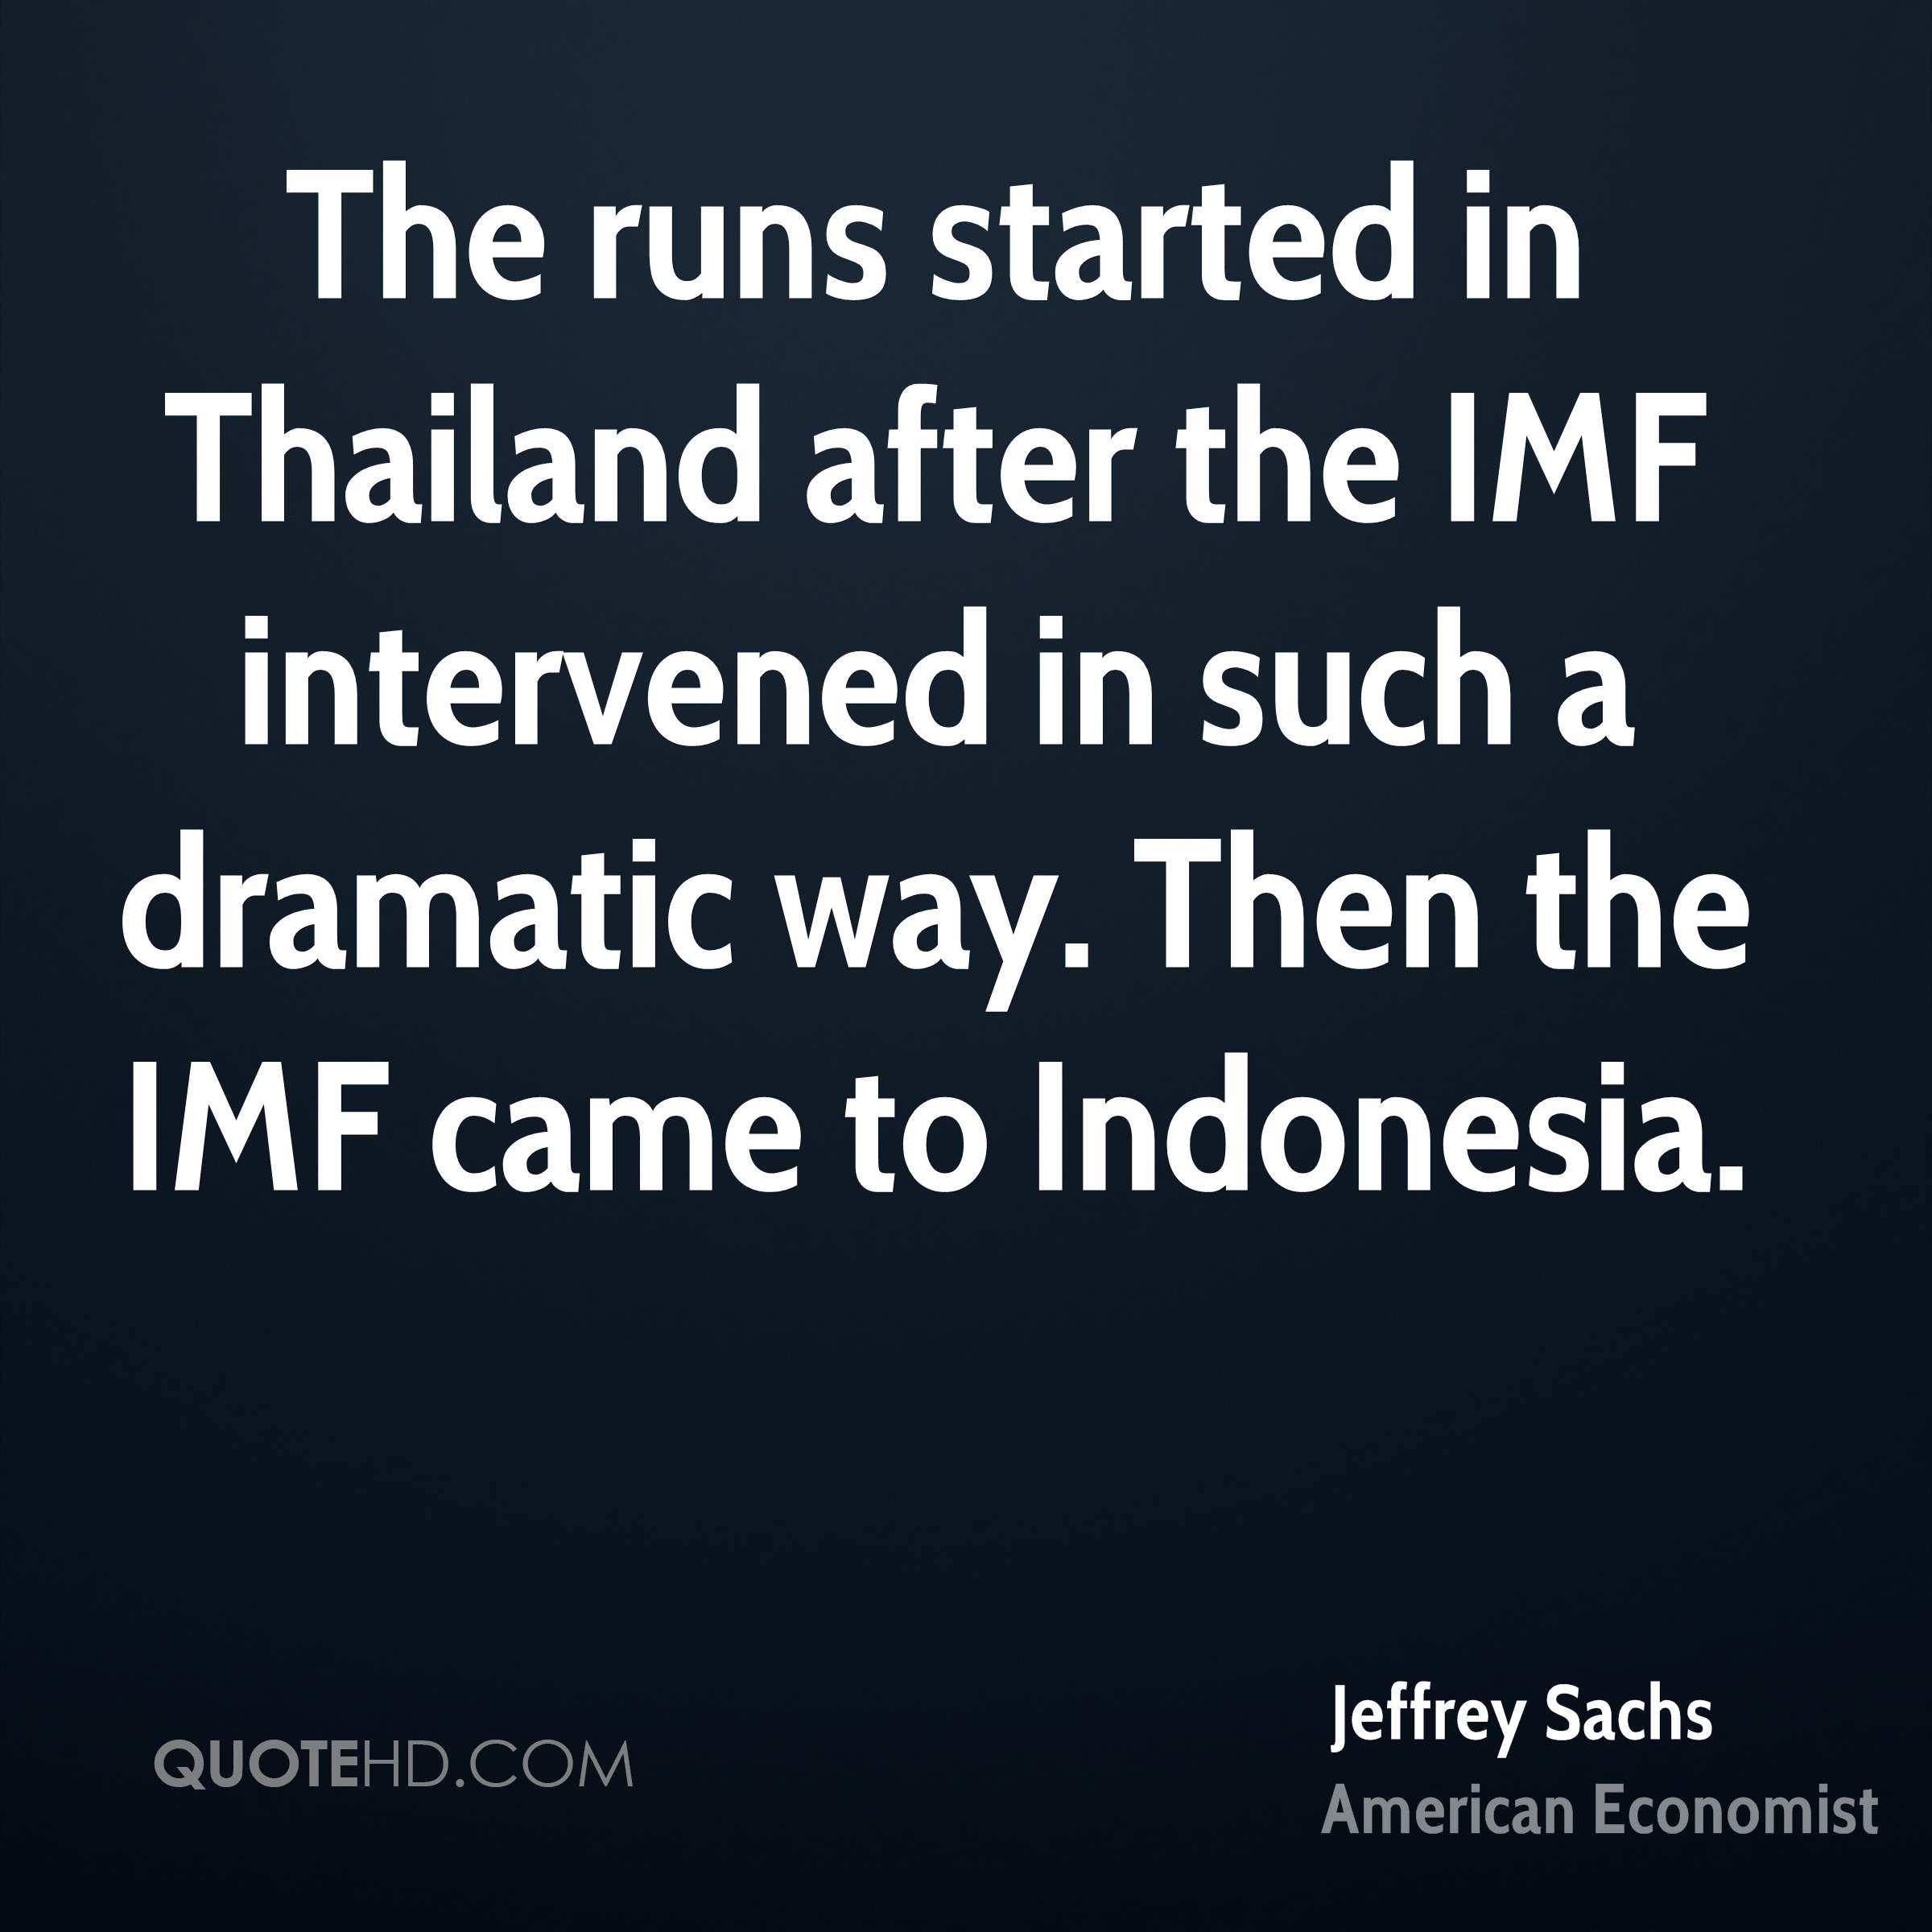 The runs started in Thailand after the IMF intervened in such a dramatic way. Then the IMF came to Indonesia.